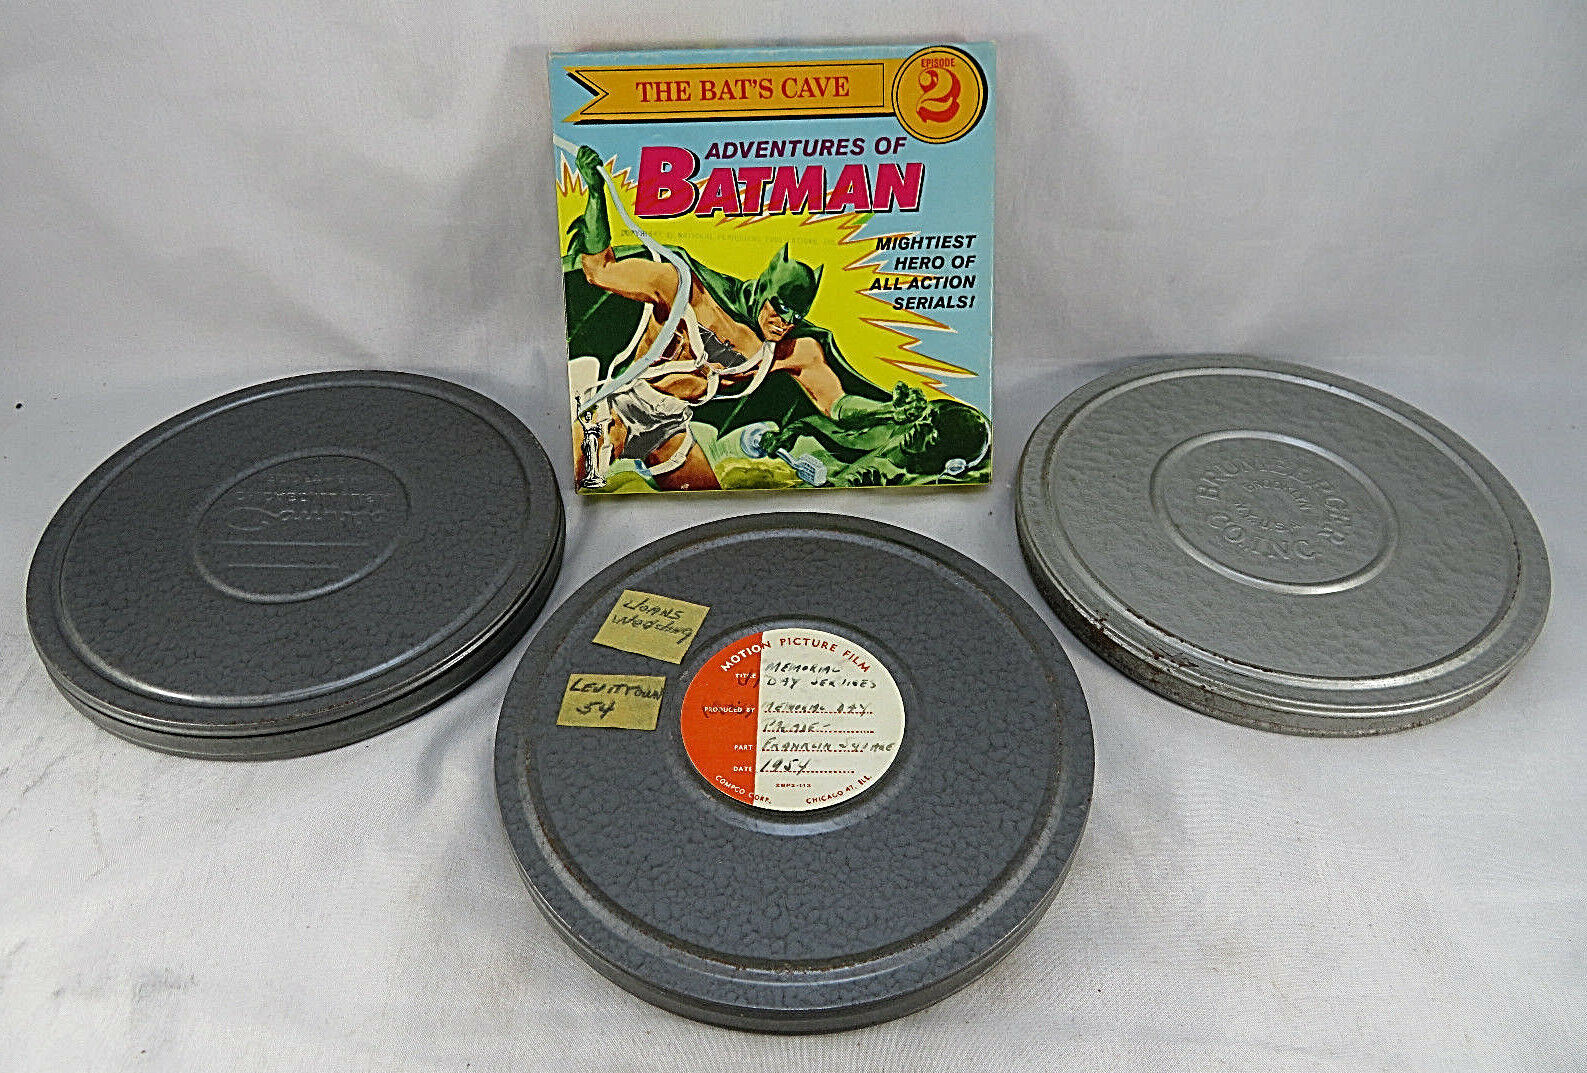 Primary image for Lot 3 Films & Adventures of Batman The Bats Cave Episode 2 Super 8 MM Home Movie